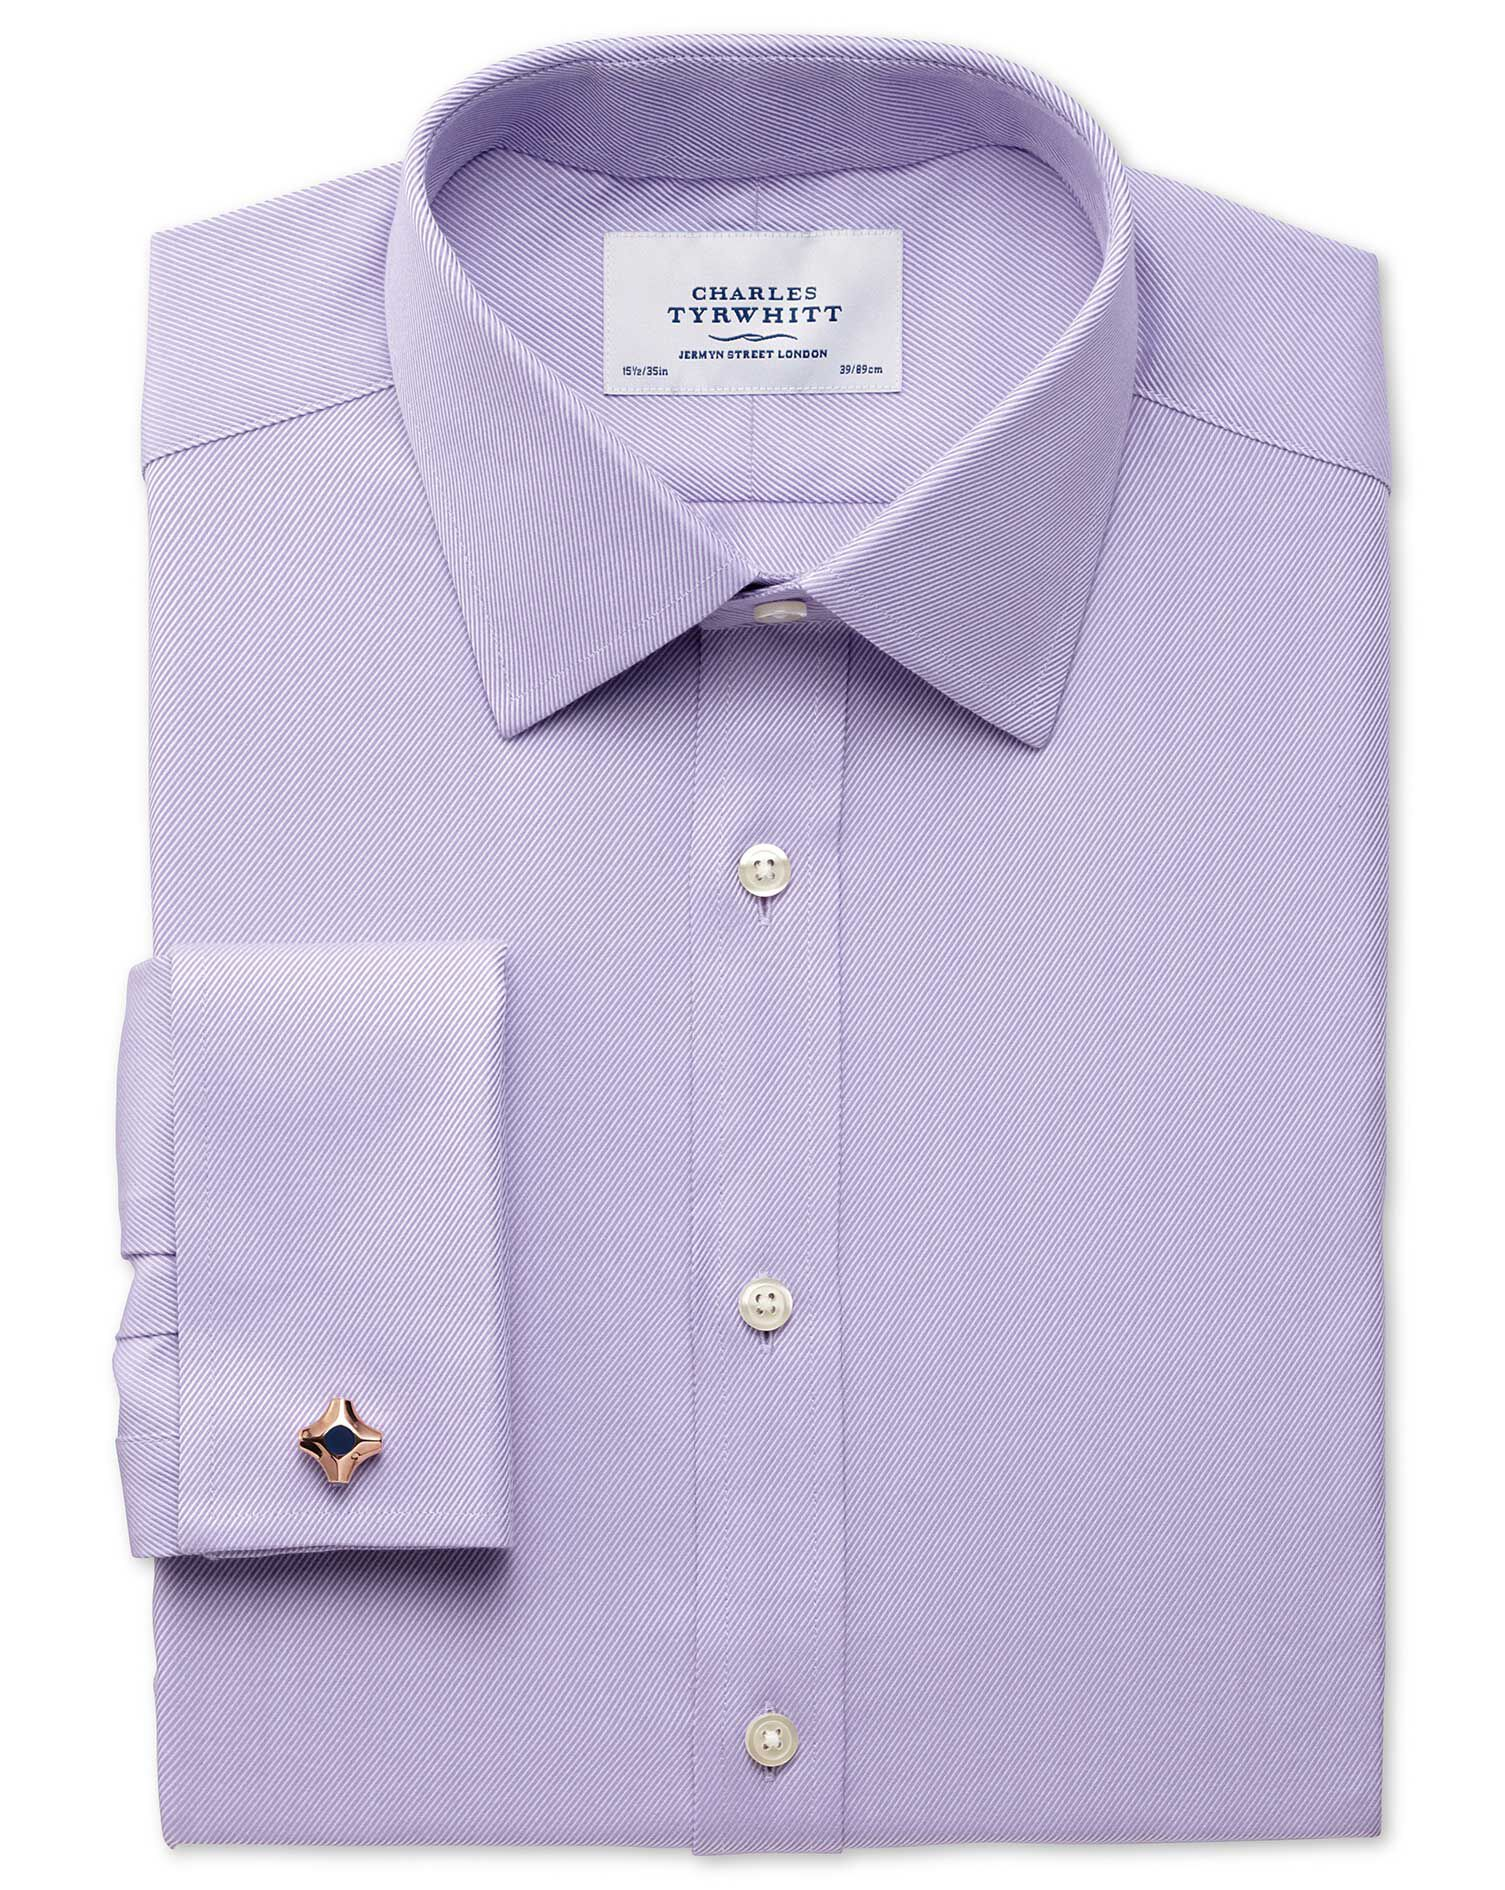 Classic Fit Egyptian Cotton Cavalry Twill Lilac Formal Shirt Single Cuff Size 15.5/33 by Charles Tyr